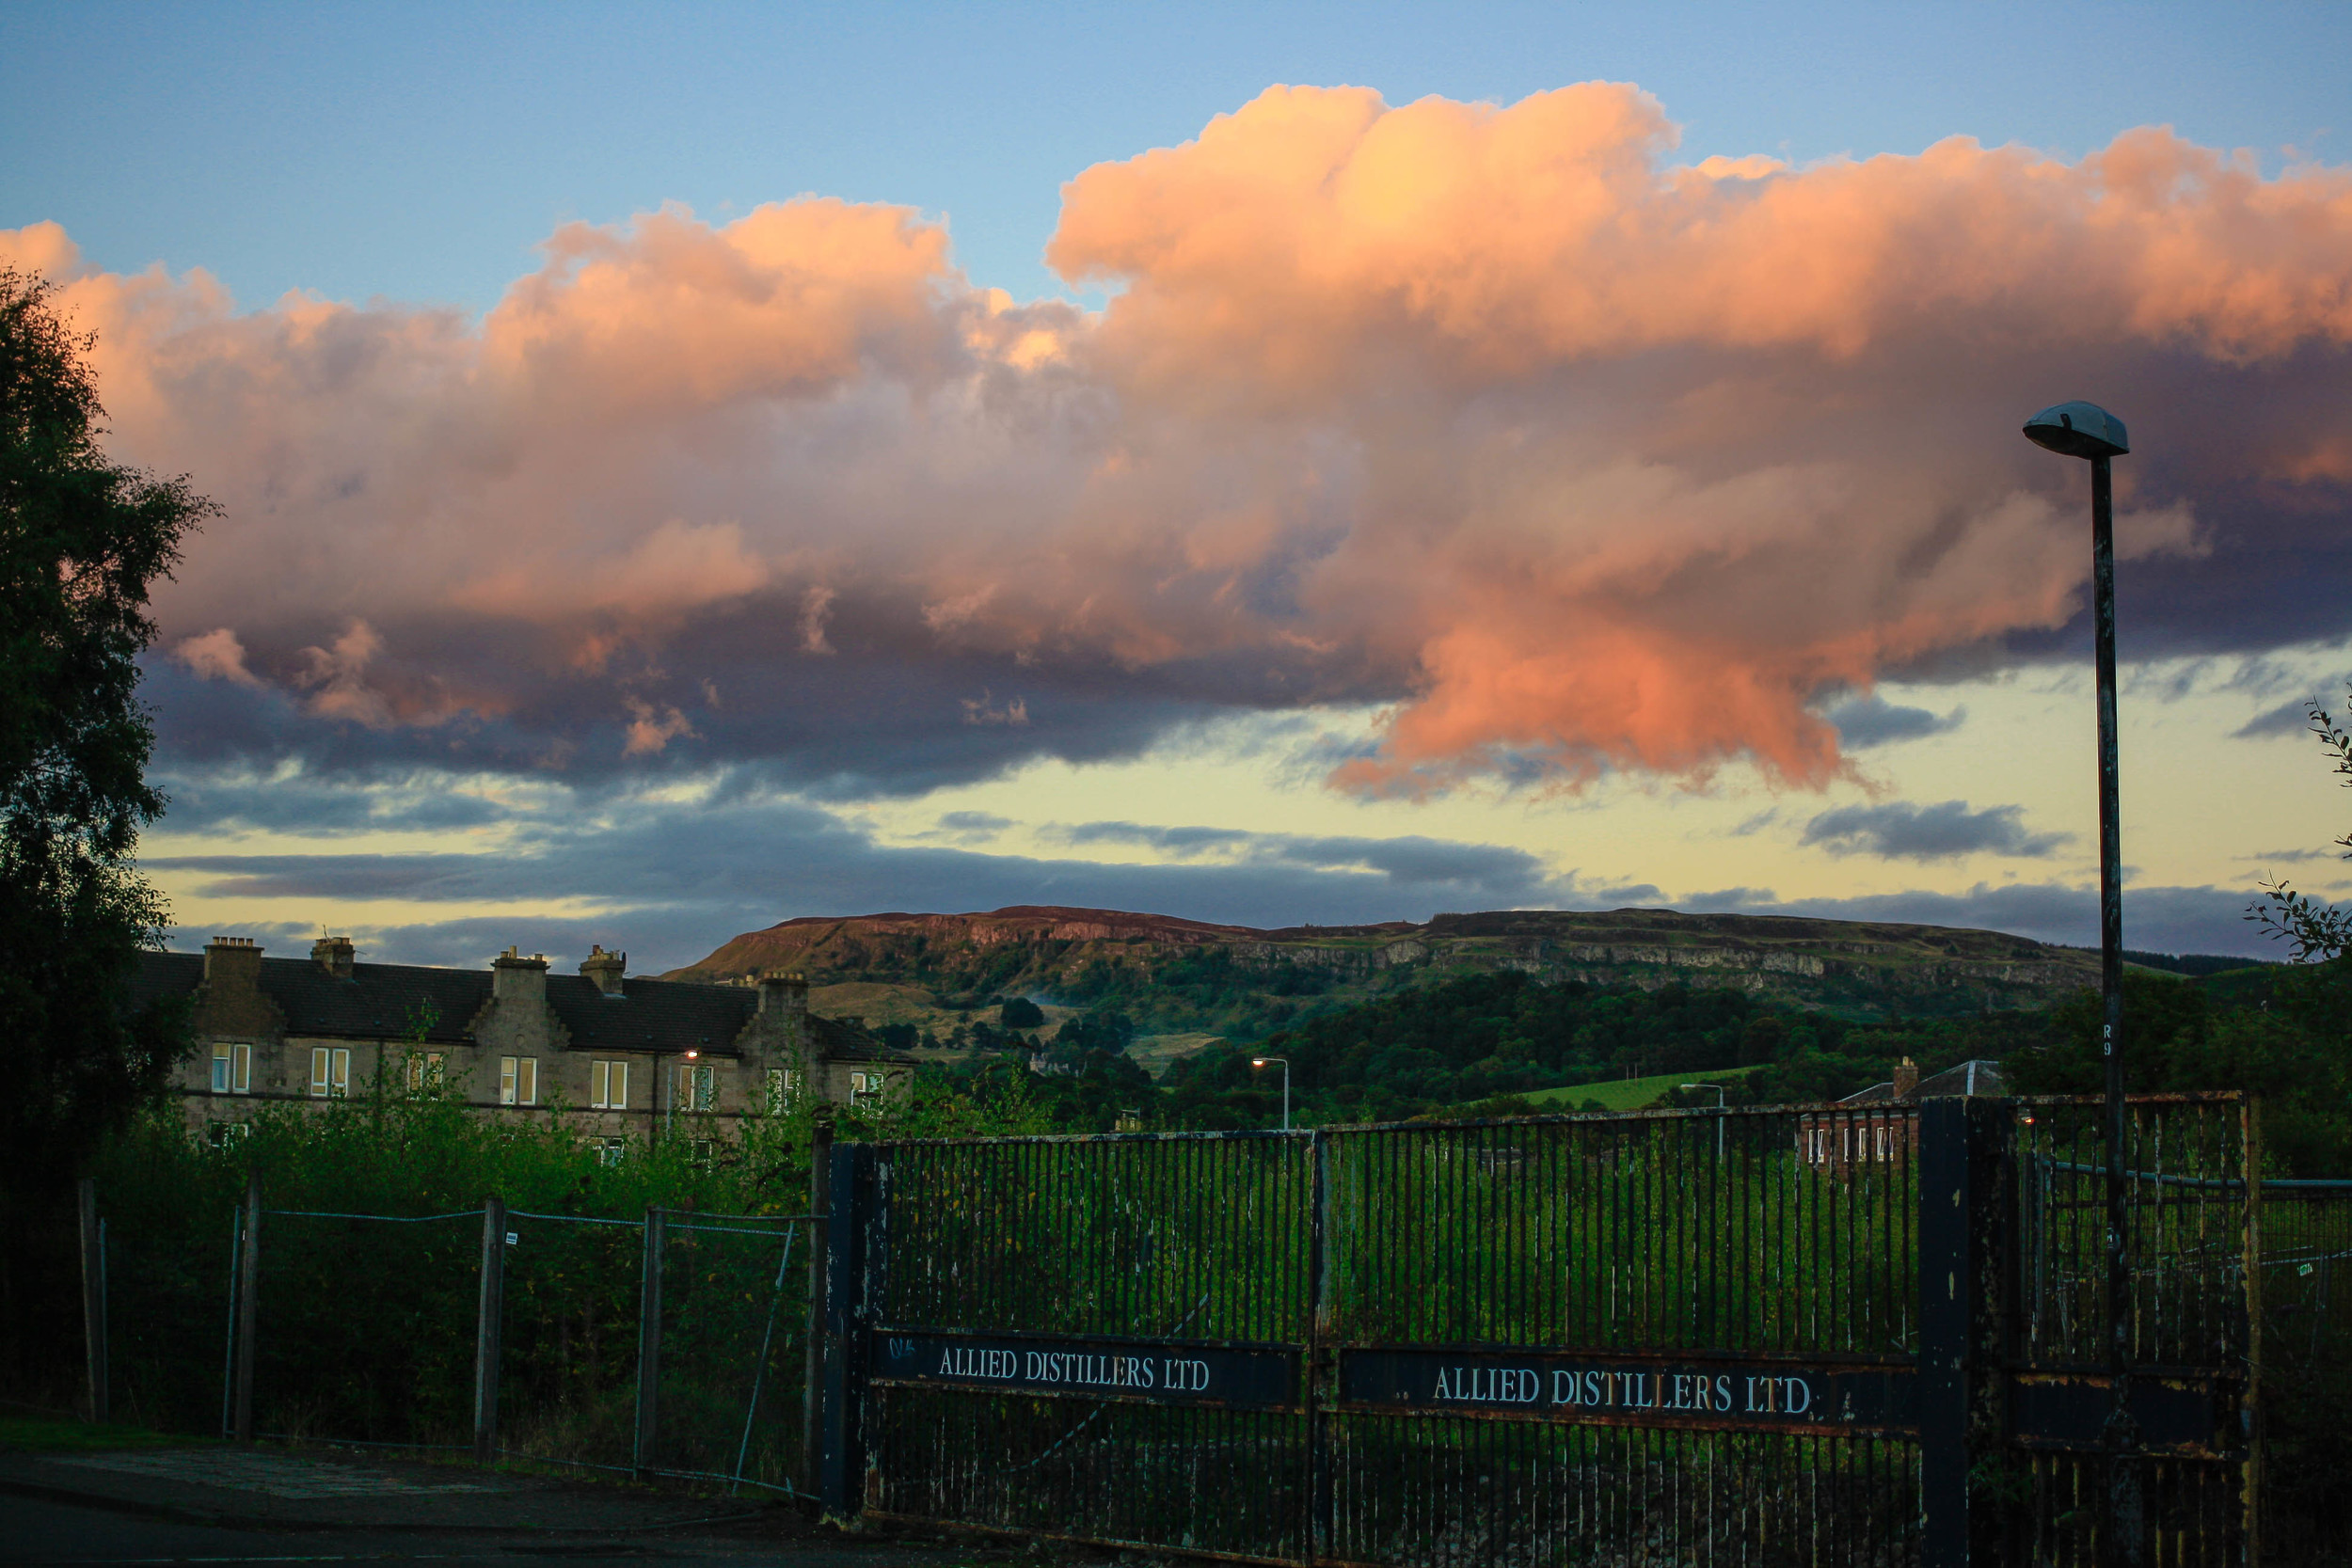 Tonight's view looking towards the Crags.